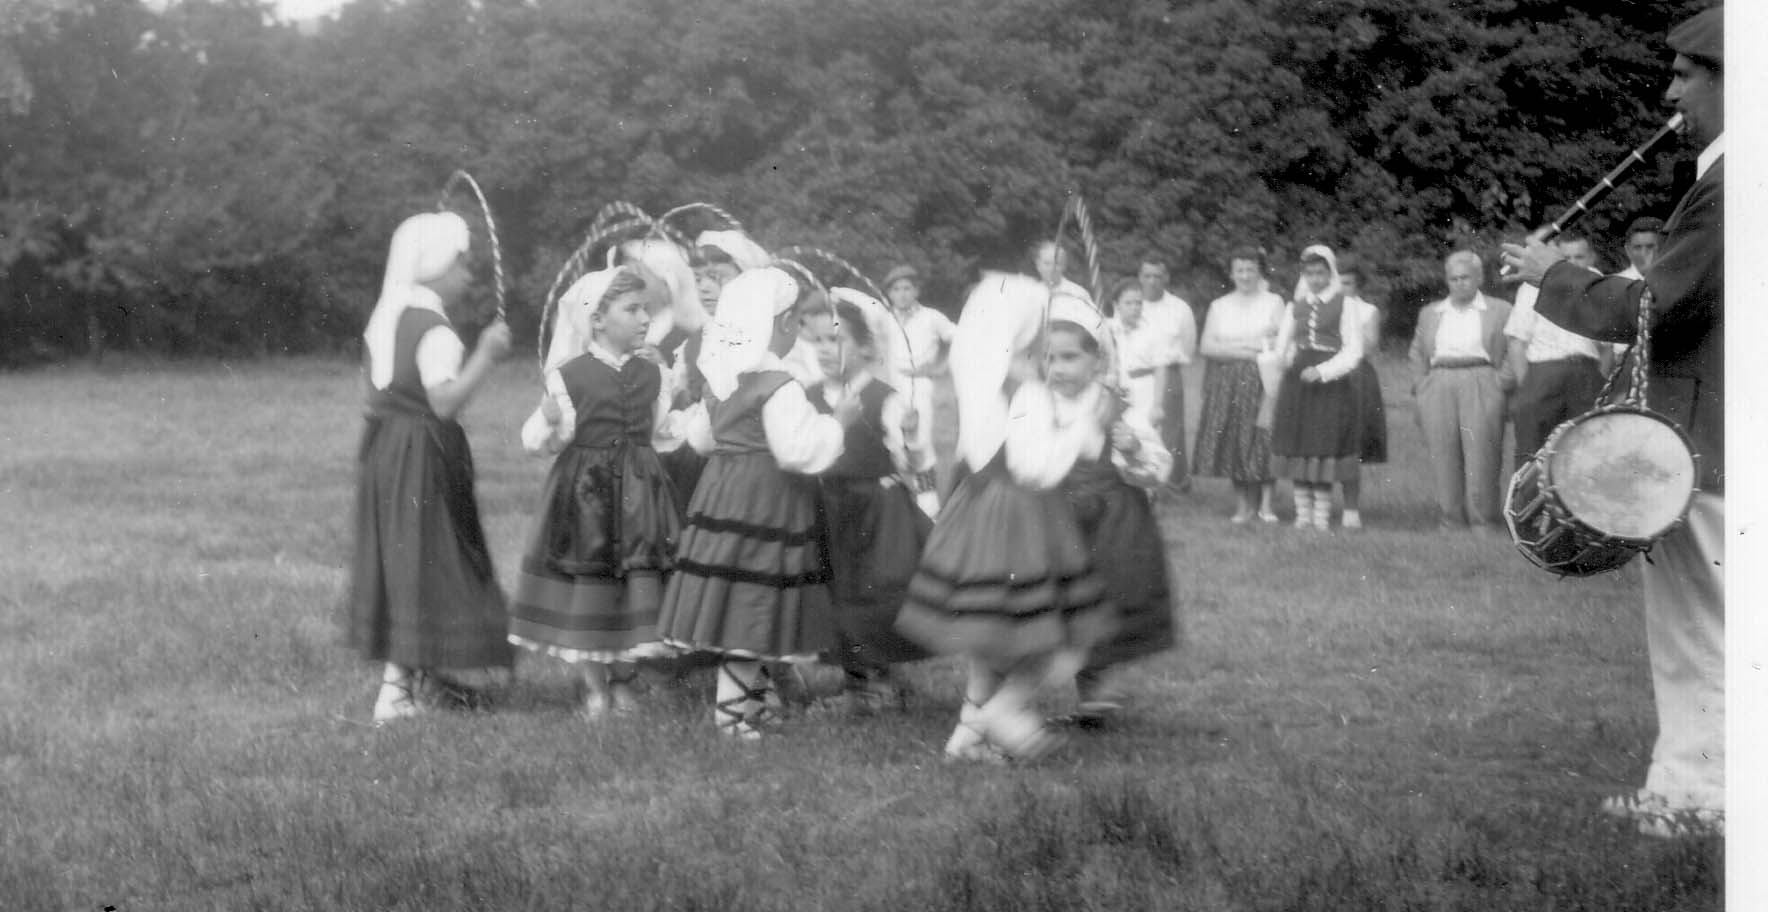 1955 NY picnic girls dancing